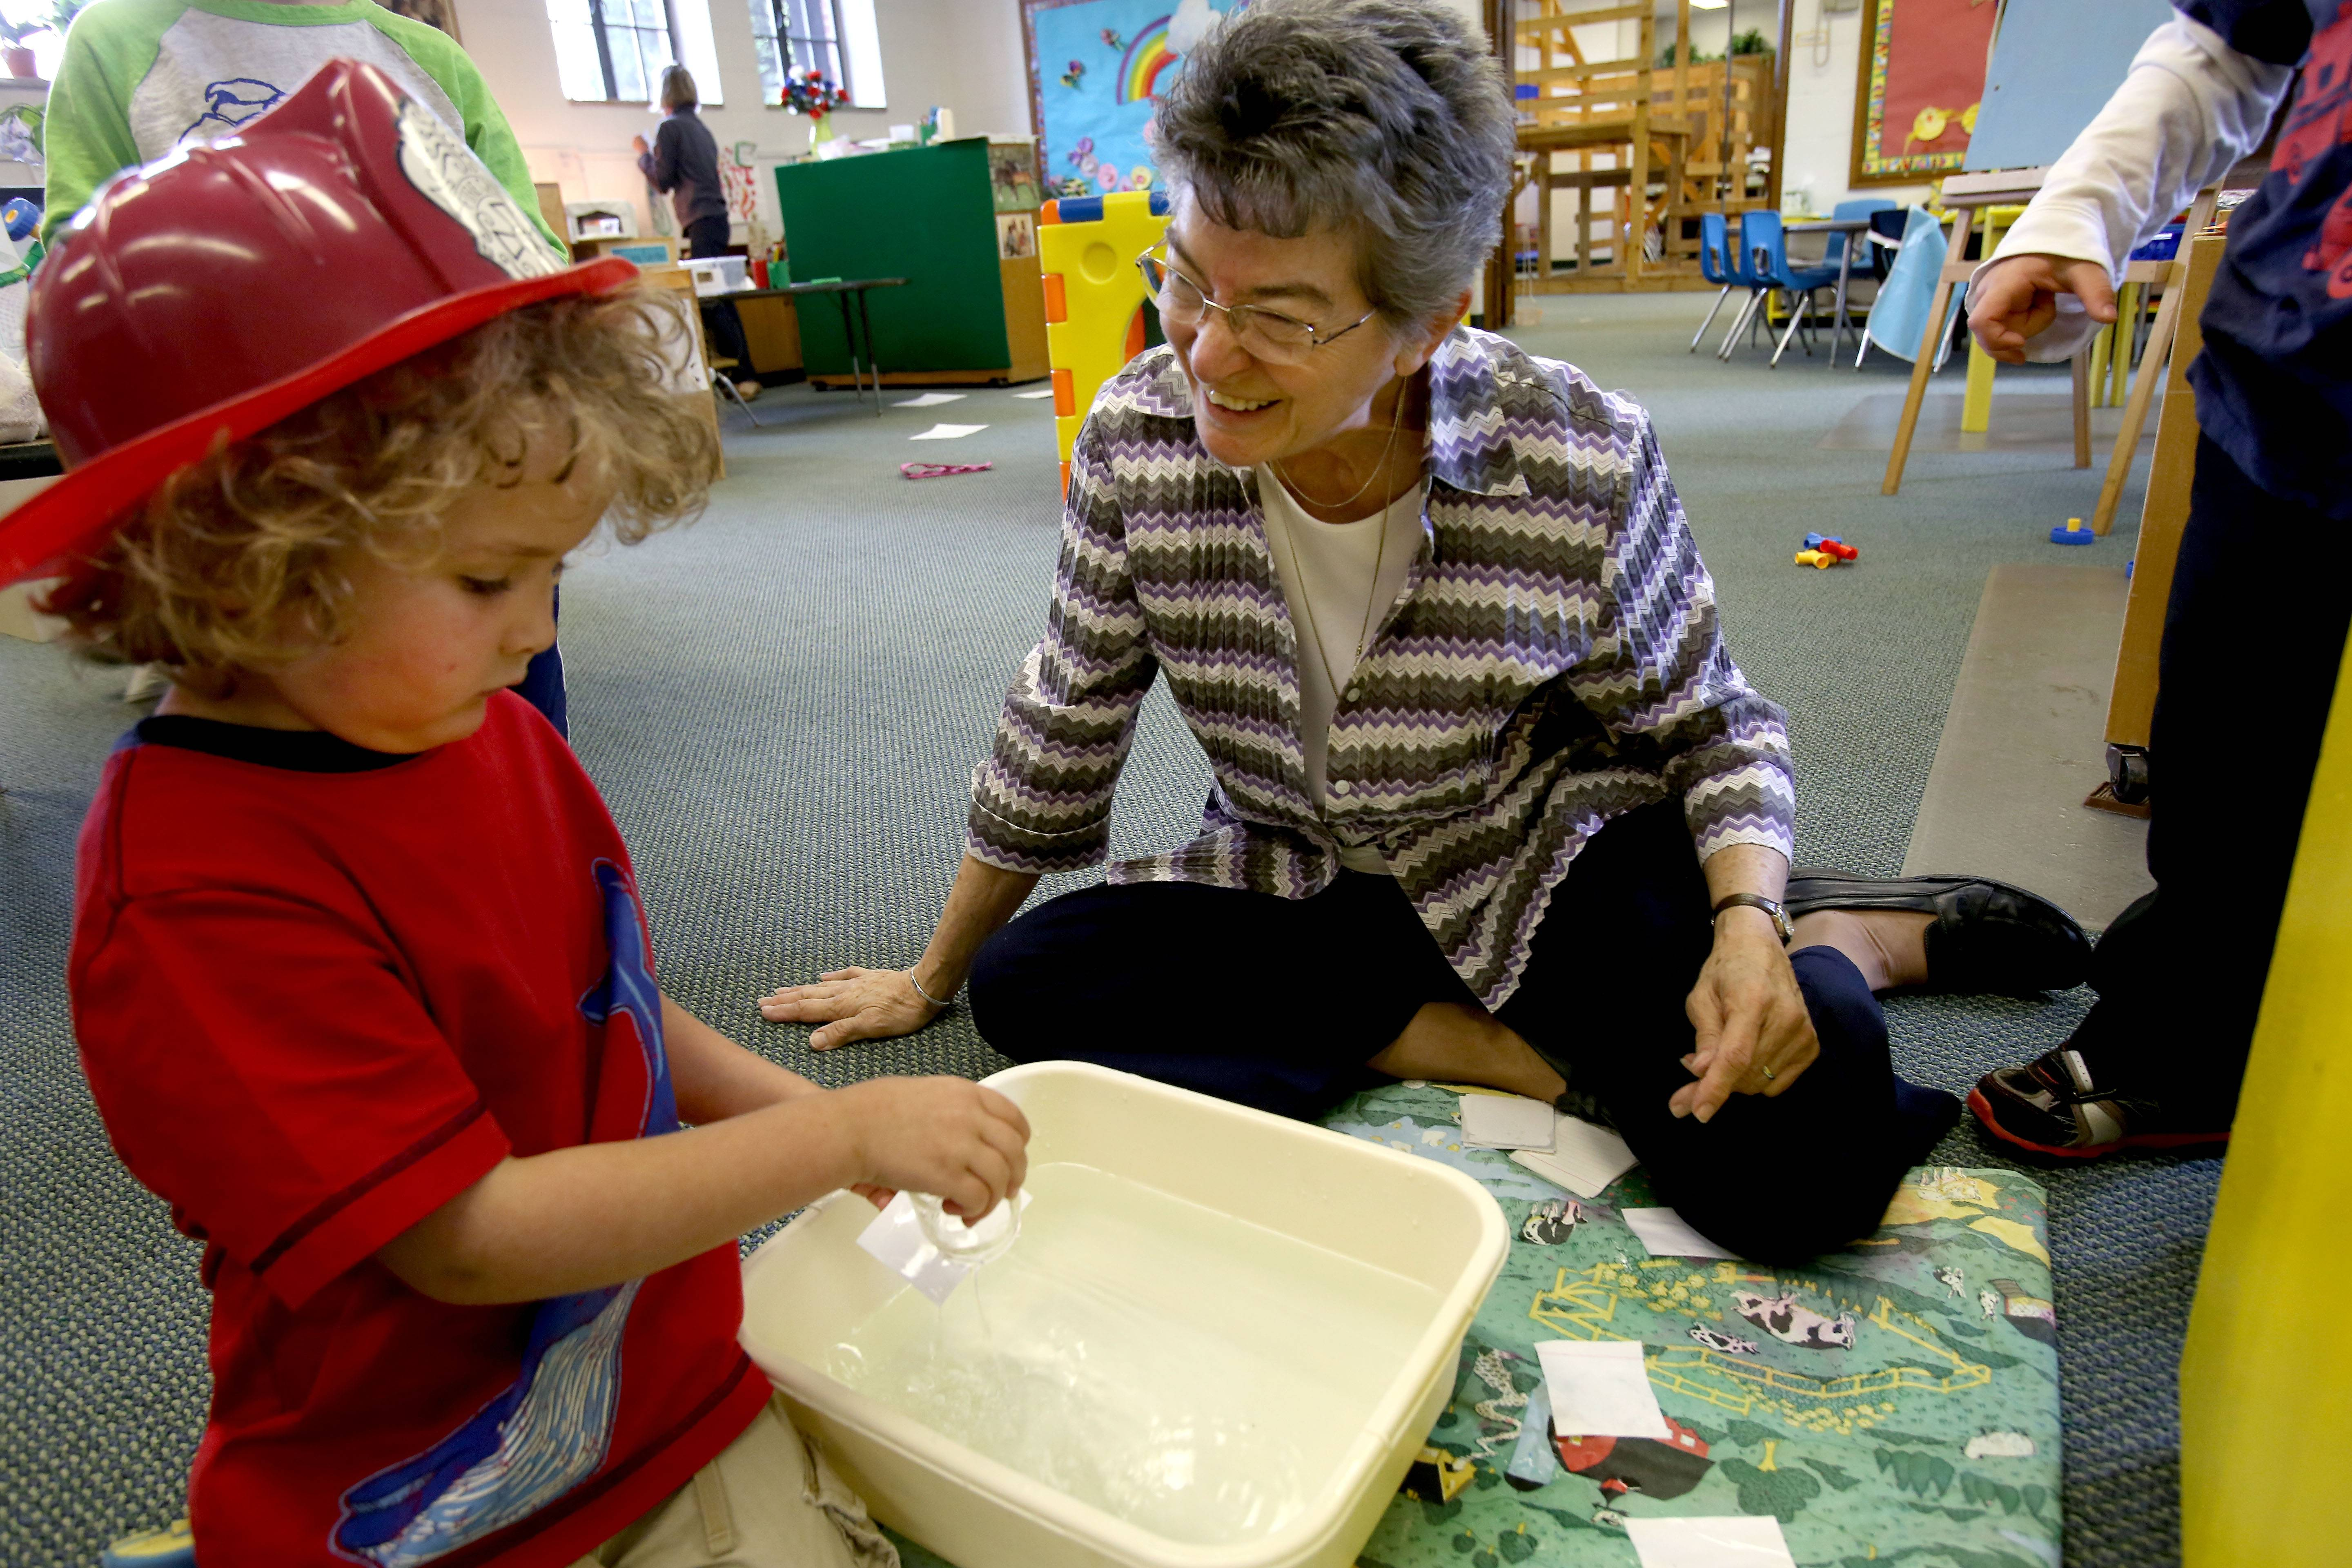 Sister Julie Stapleton helps Jacob Wilson, 4, with a science experiment at the Loretto Early Childhood Center in Wheaton.